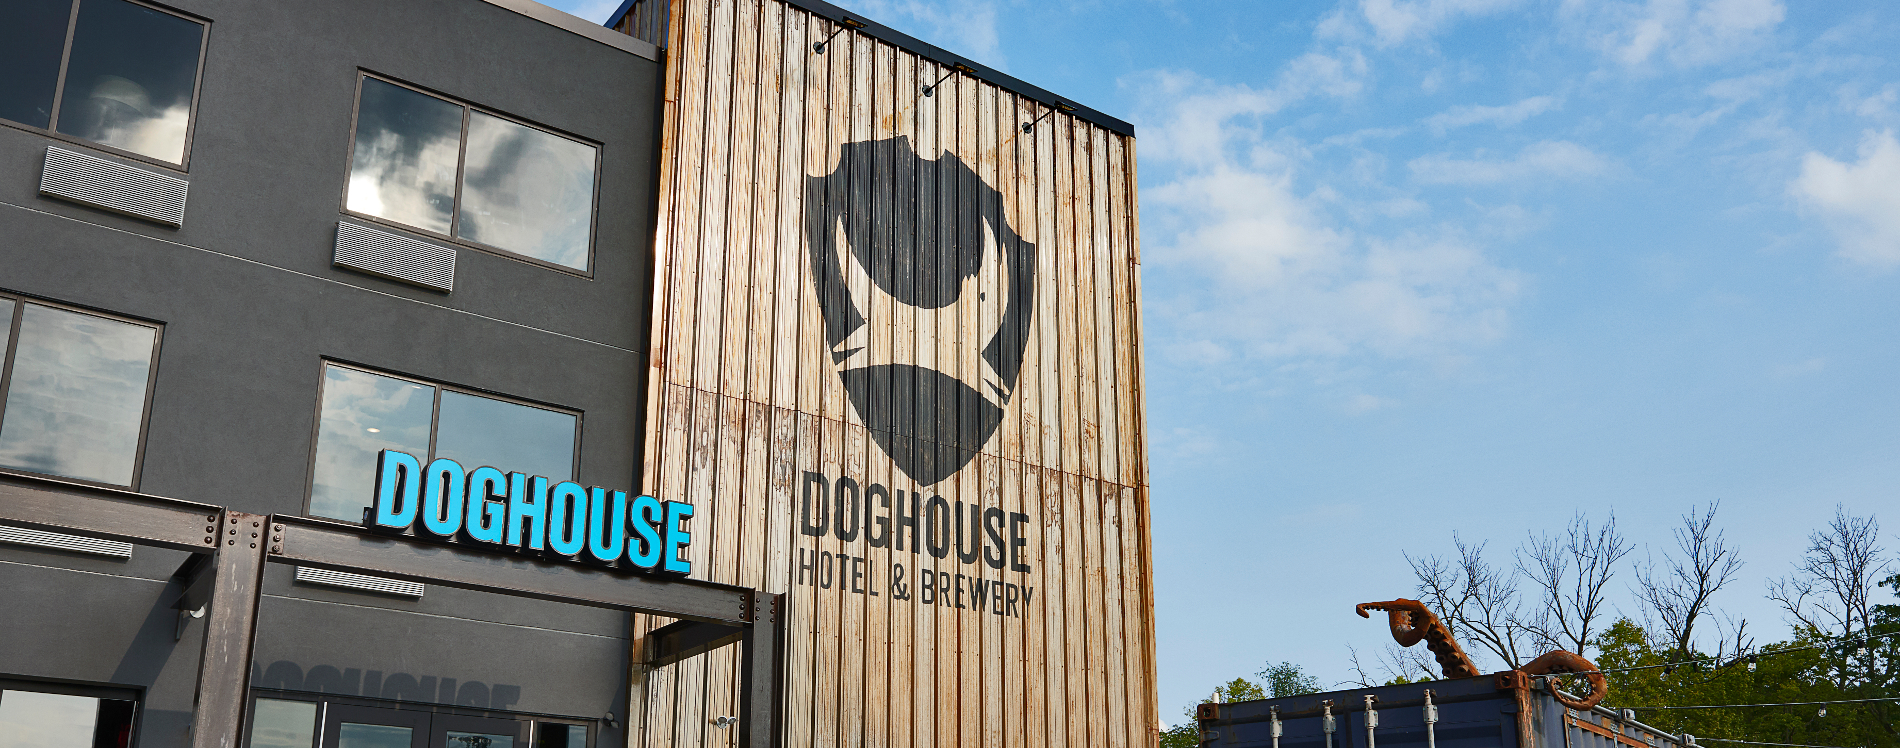 COMING SOON: THE DOGHOUSE LONDON